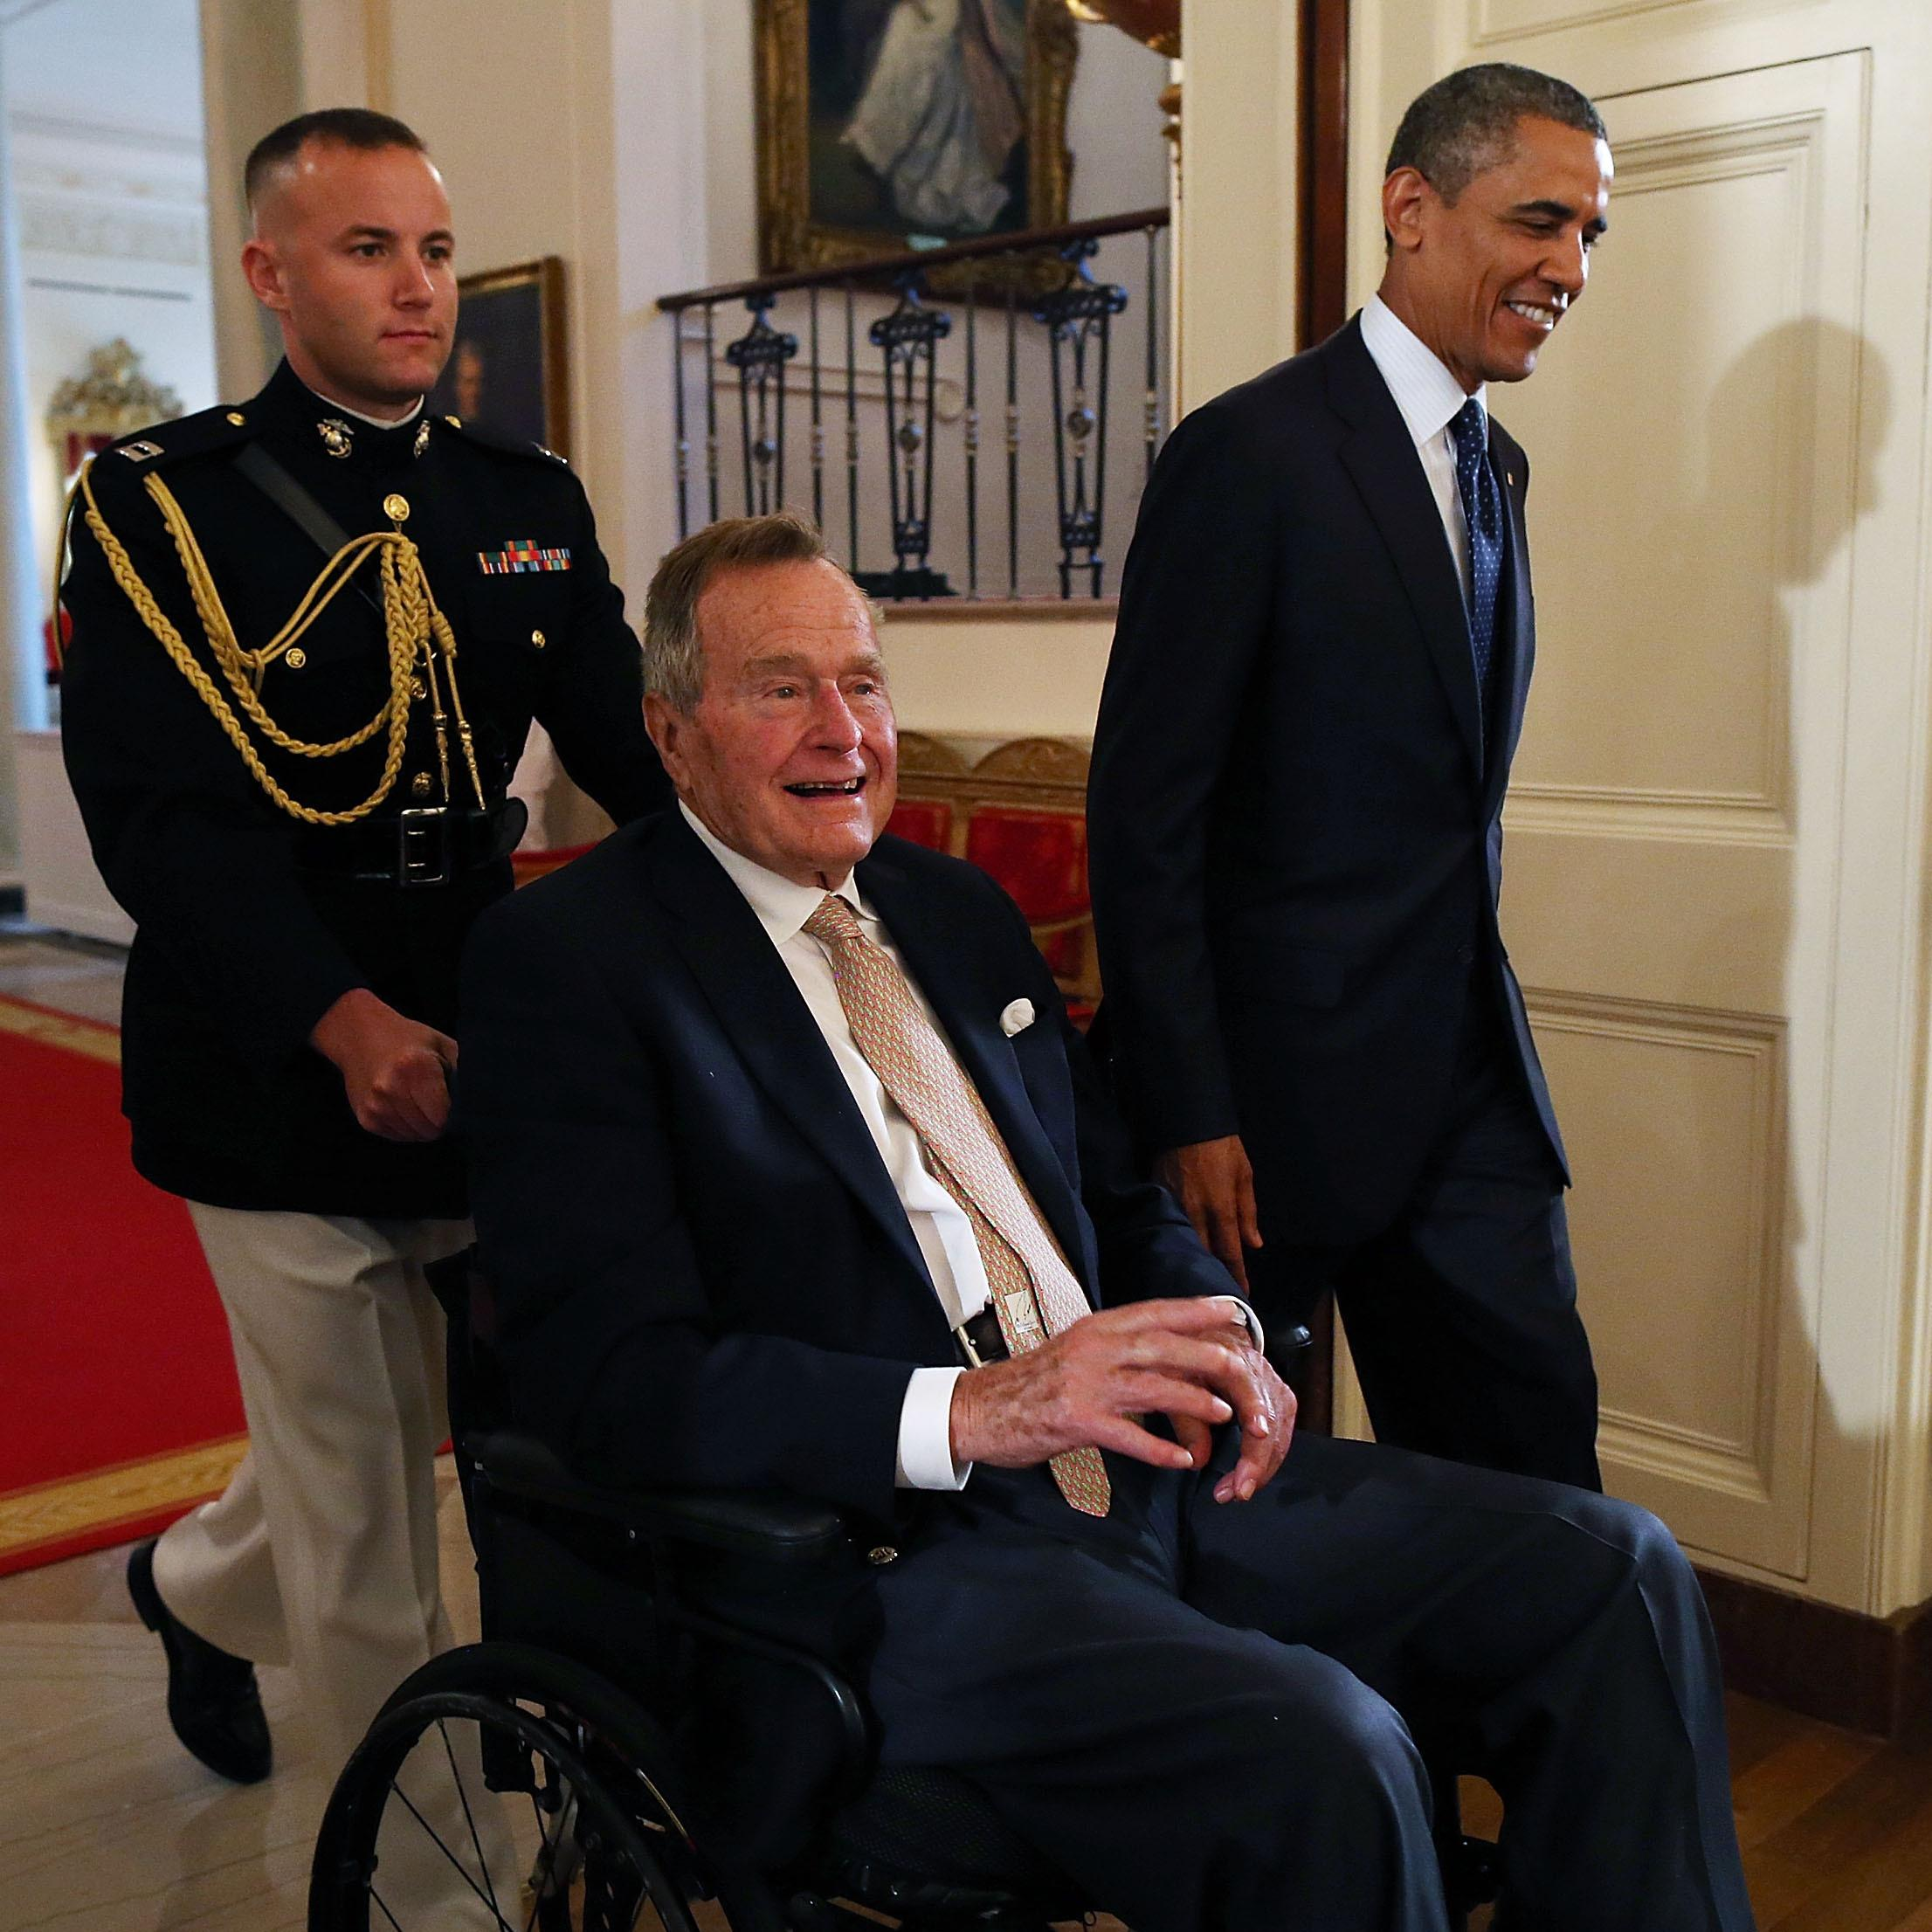 Former President George H. W. Bush in a wheelchair as he was escorted into the East Room of the White House on Monday by President Obama.  sc 1 th 225 & President George H.W. Bush Honored At White House | SDPB Radio